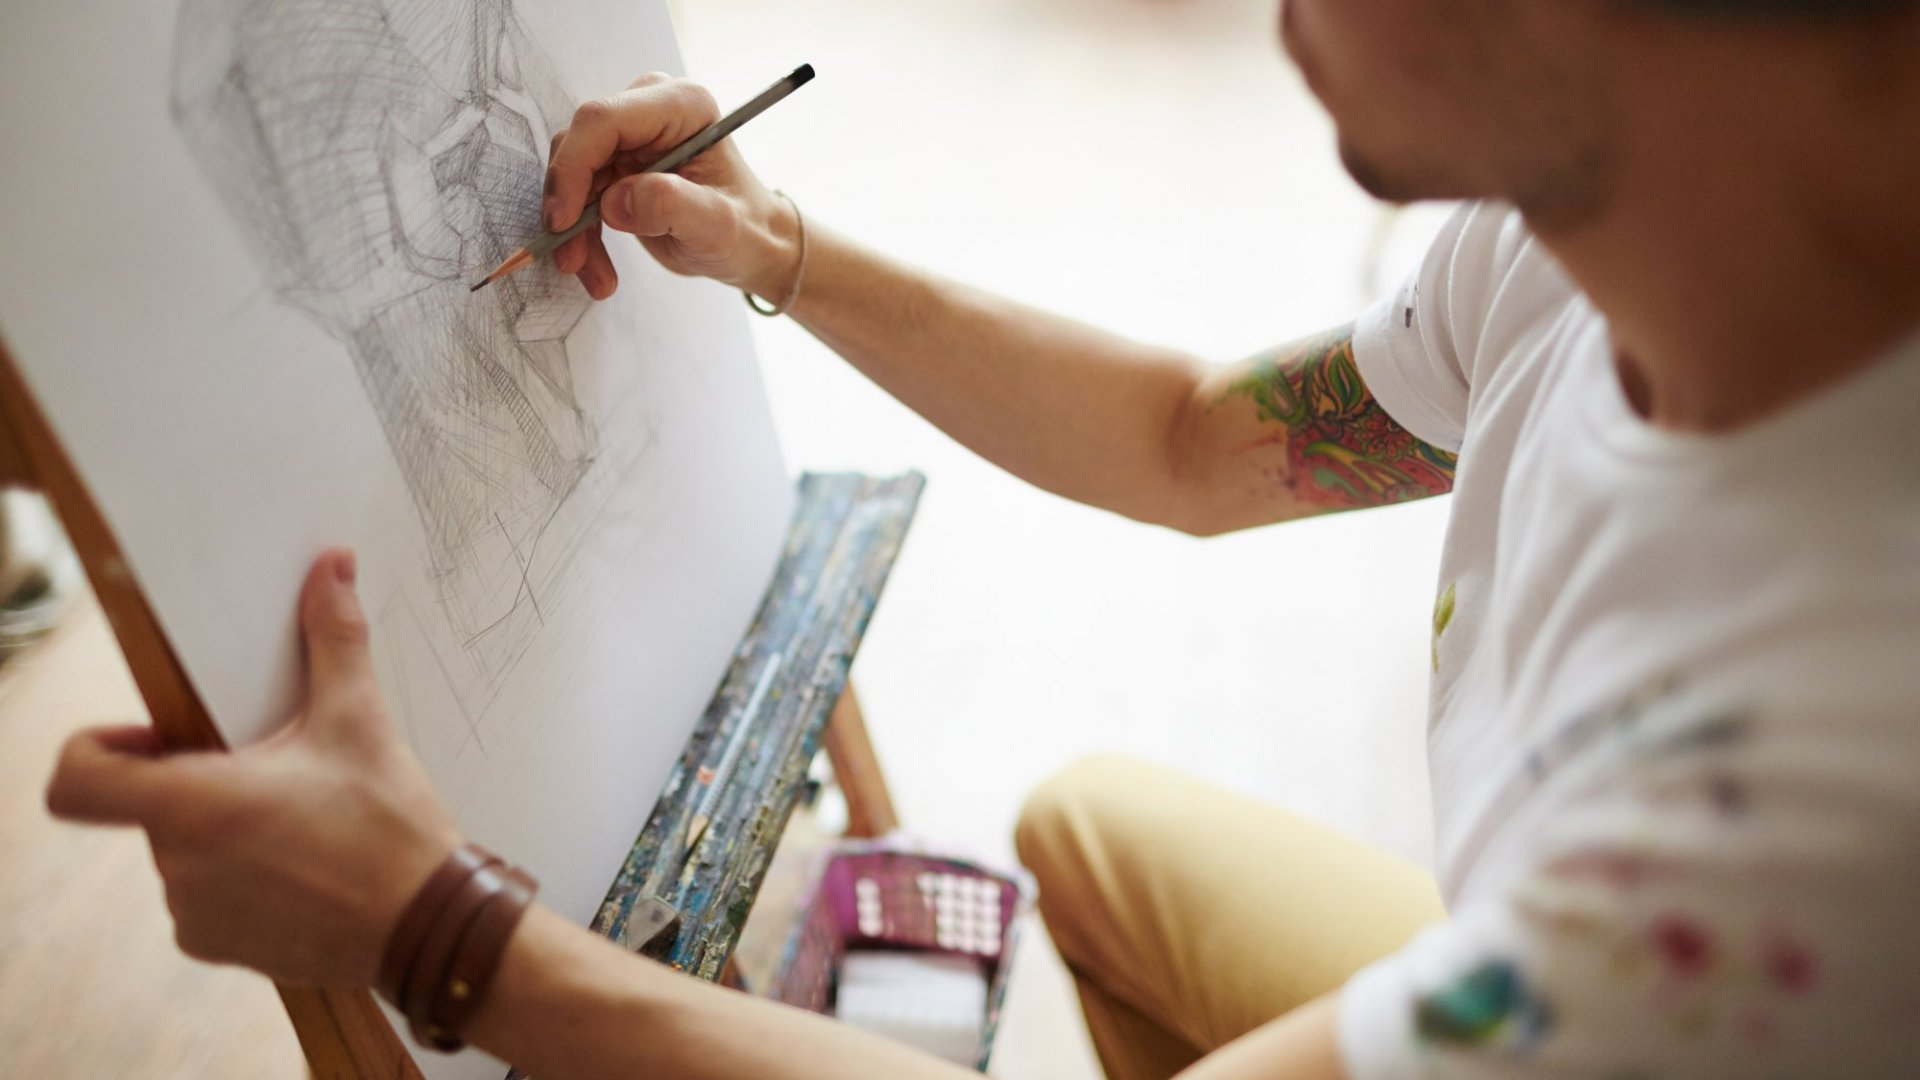 3 Ways Drawing More Will Make You Smarter (Even If You're Terrible at It)